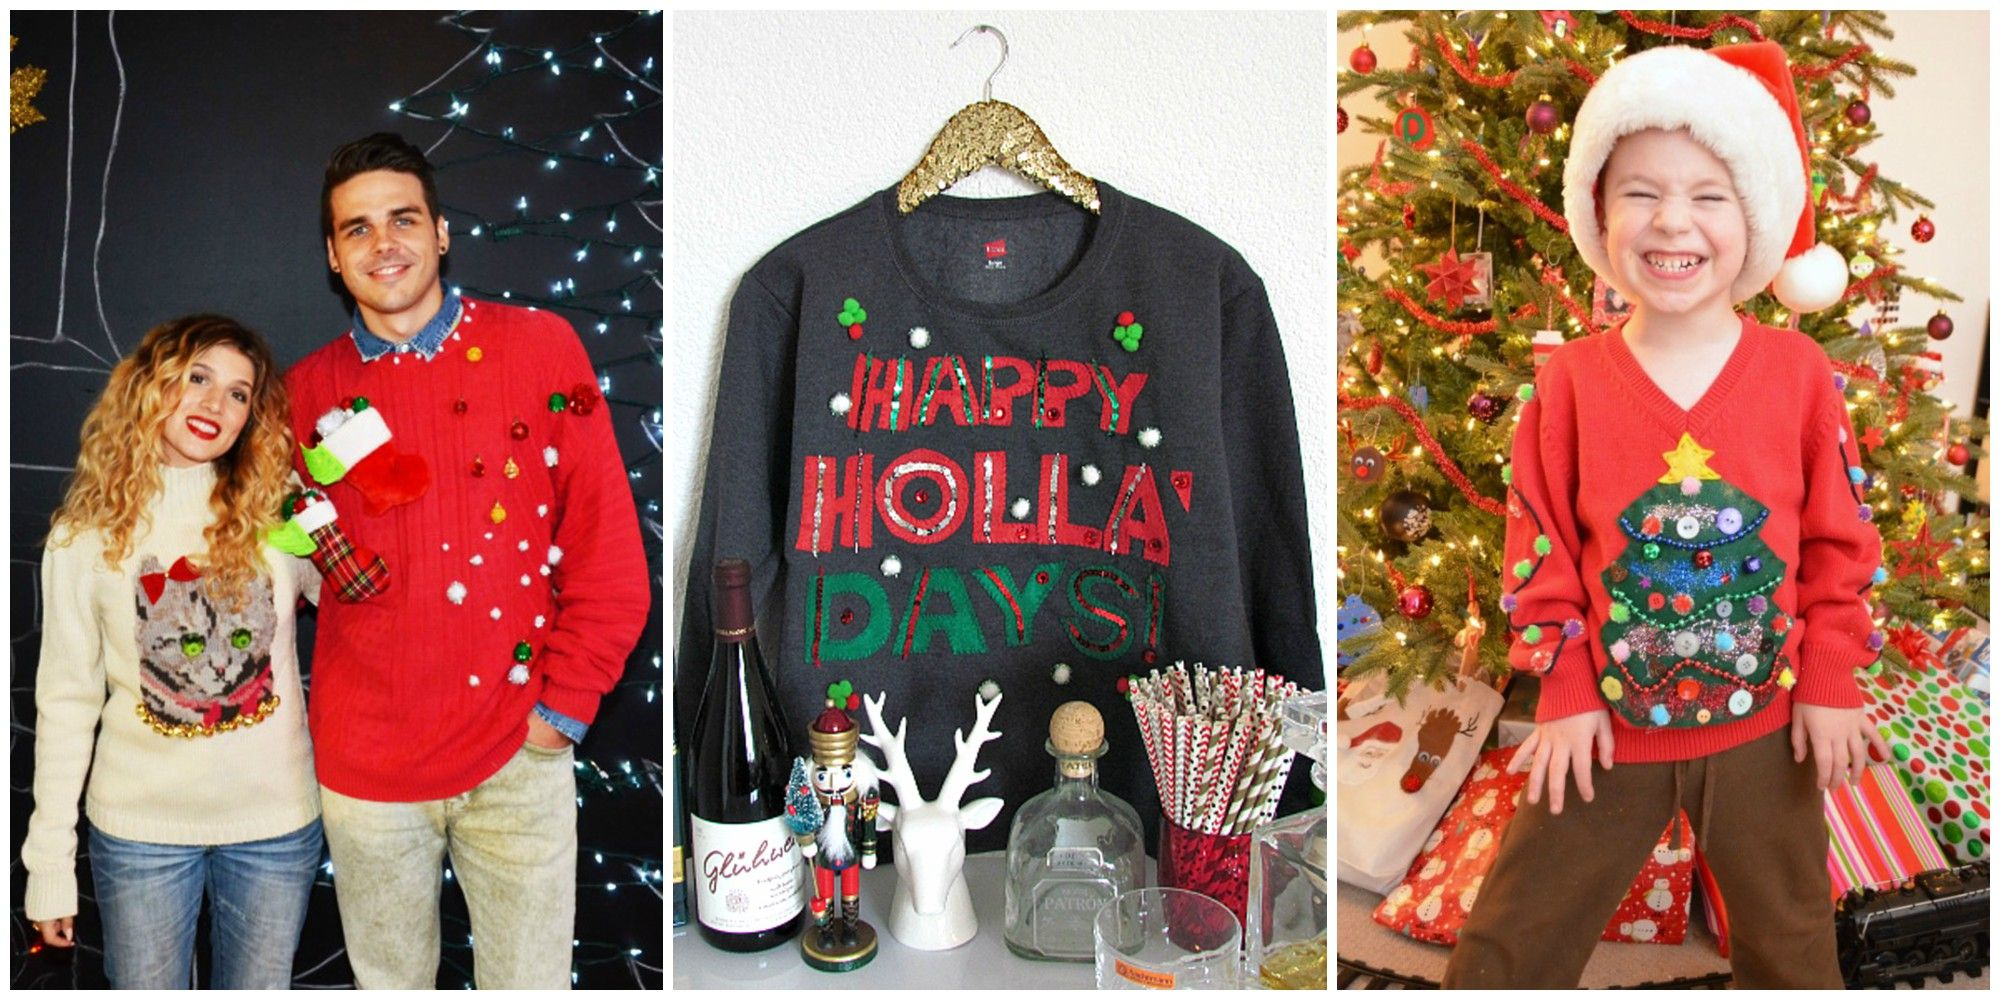 10 DIY Ugly Christmas Sweater Ideas That Would Make Santa Proud